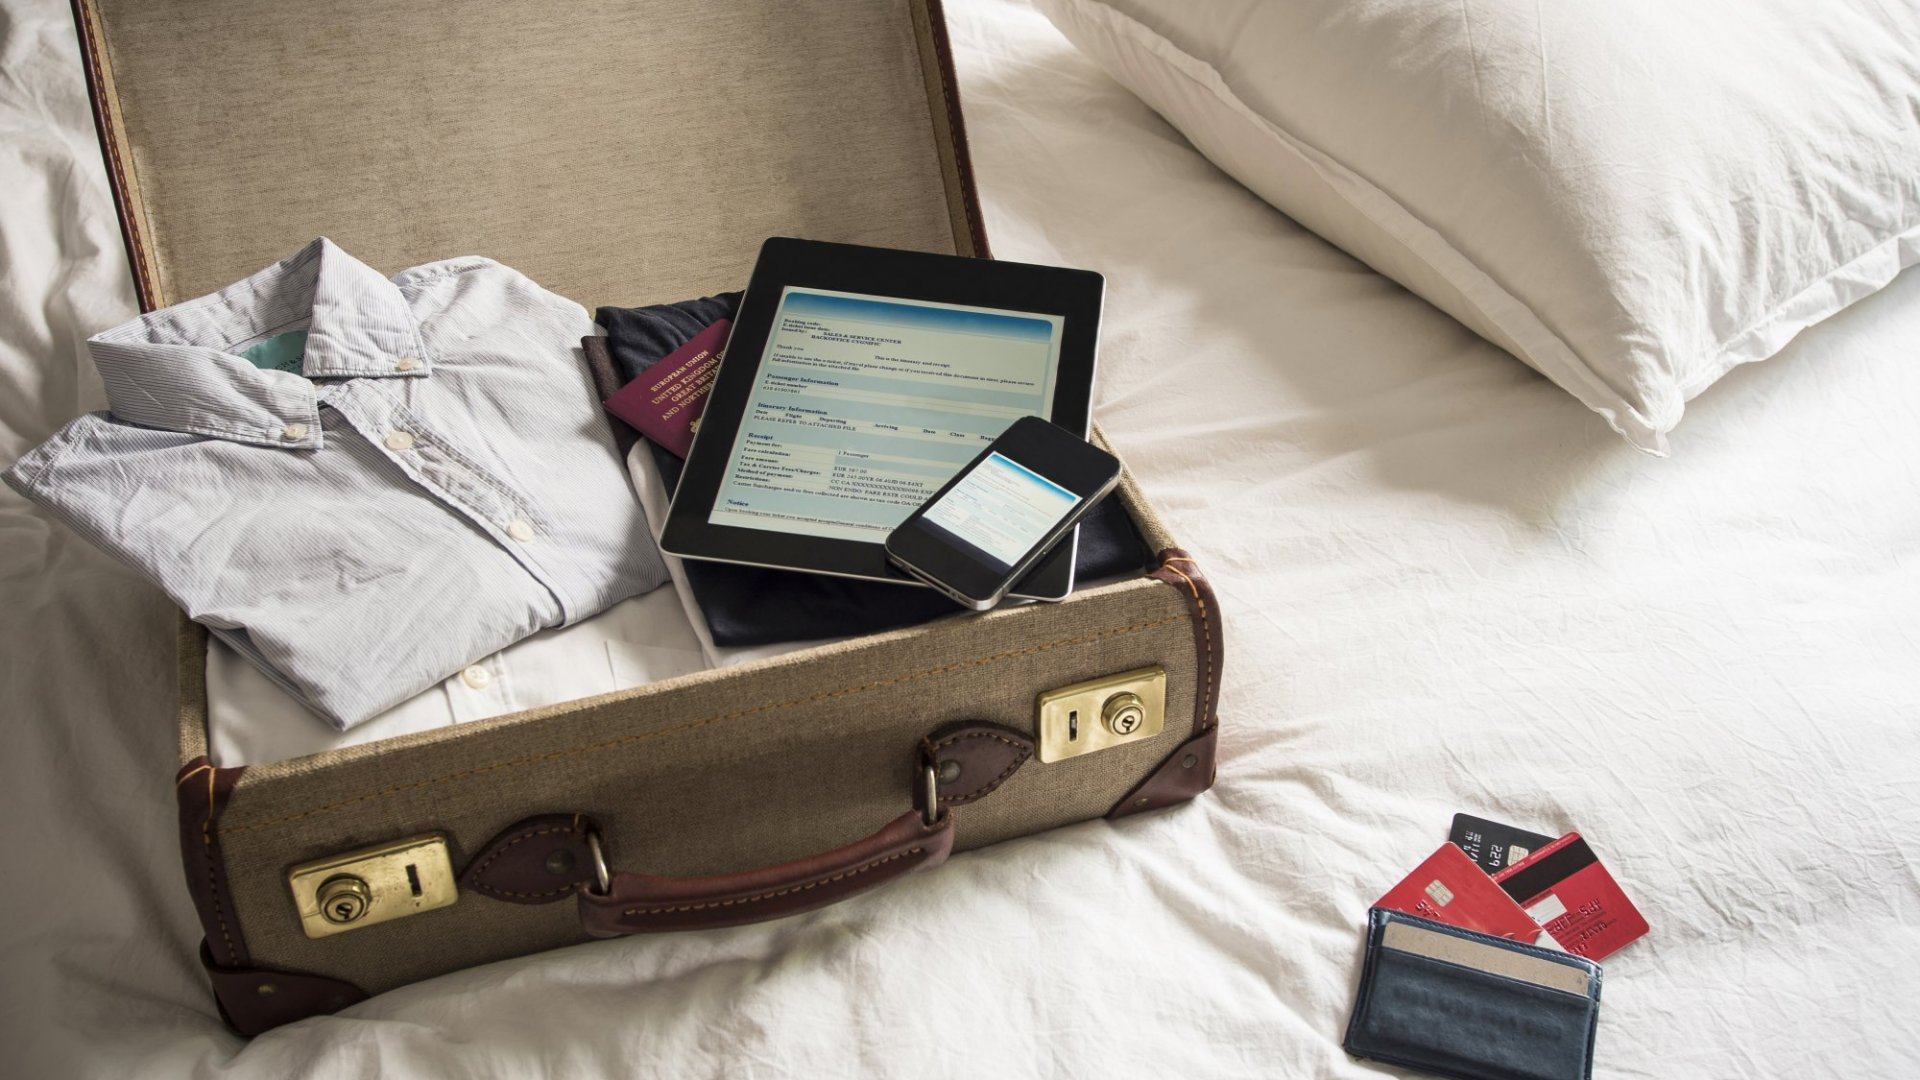 16 Things You Must Do Before Traveling If You Want to Stay Cyber-Secure